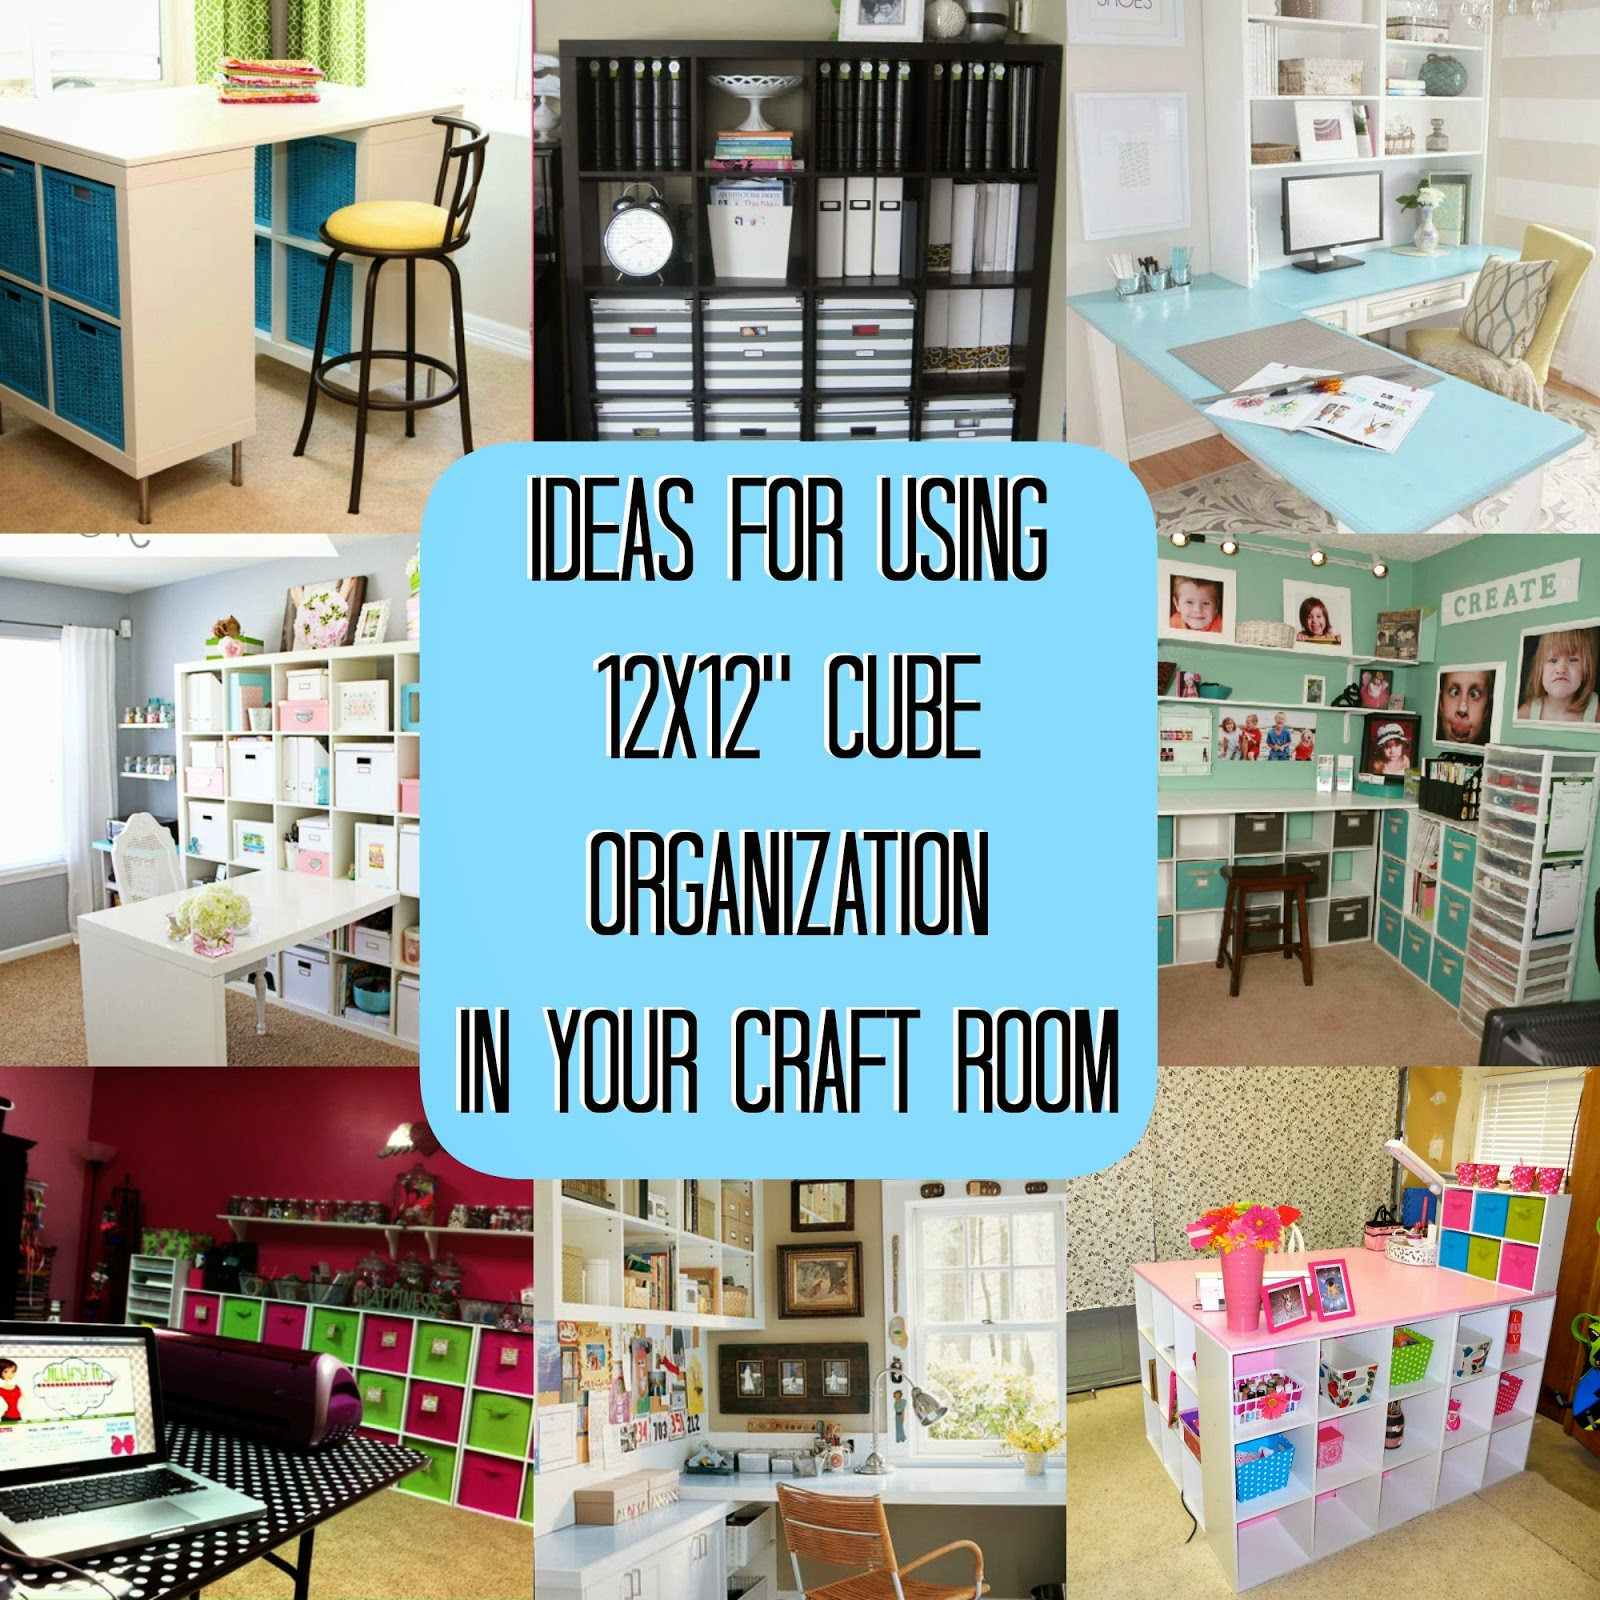 Craft room organization on a budget - Storage For Craft Room Storage For Craft Room Craft Room Organization With 12x12 Cubes